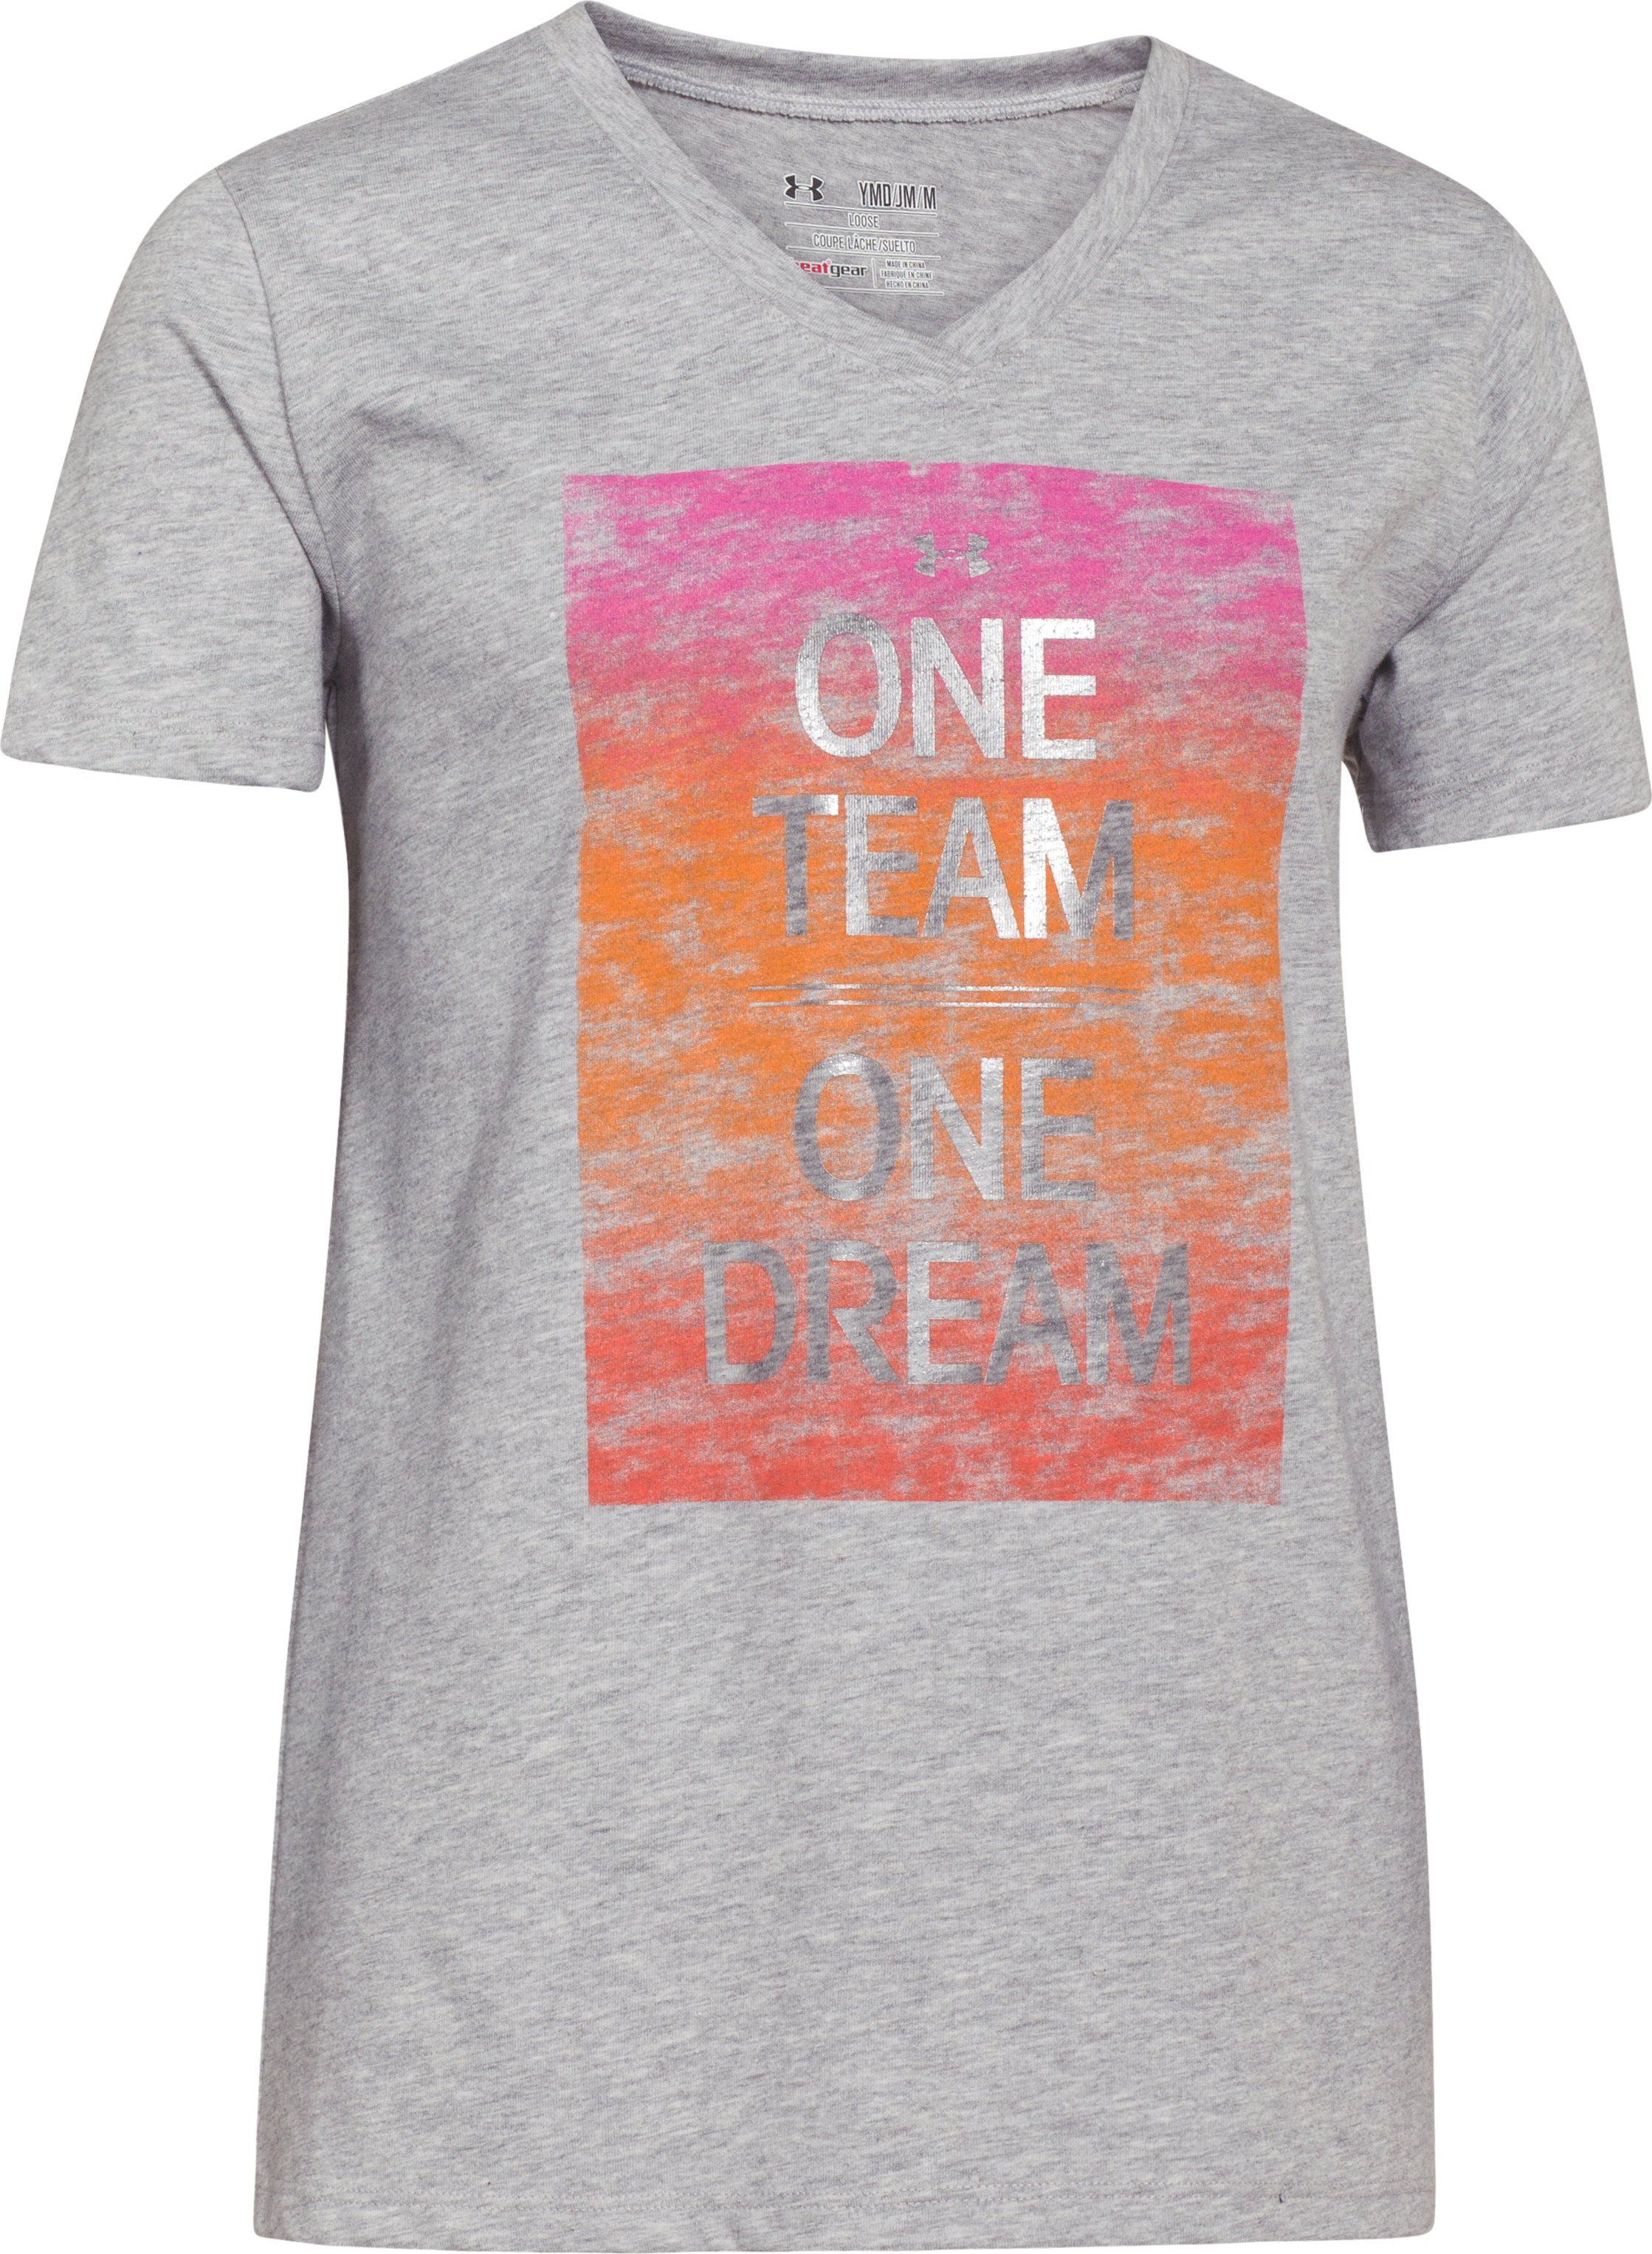 Girls' One Team T-Shirt, True Gray Heather, zoomed image